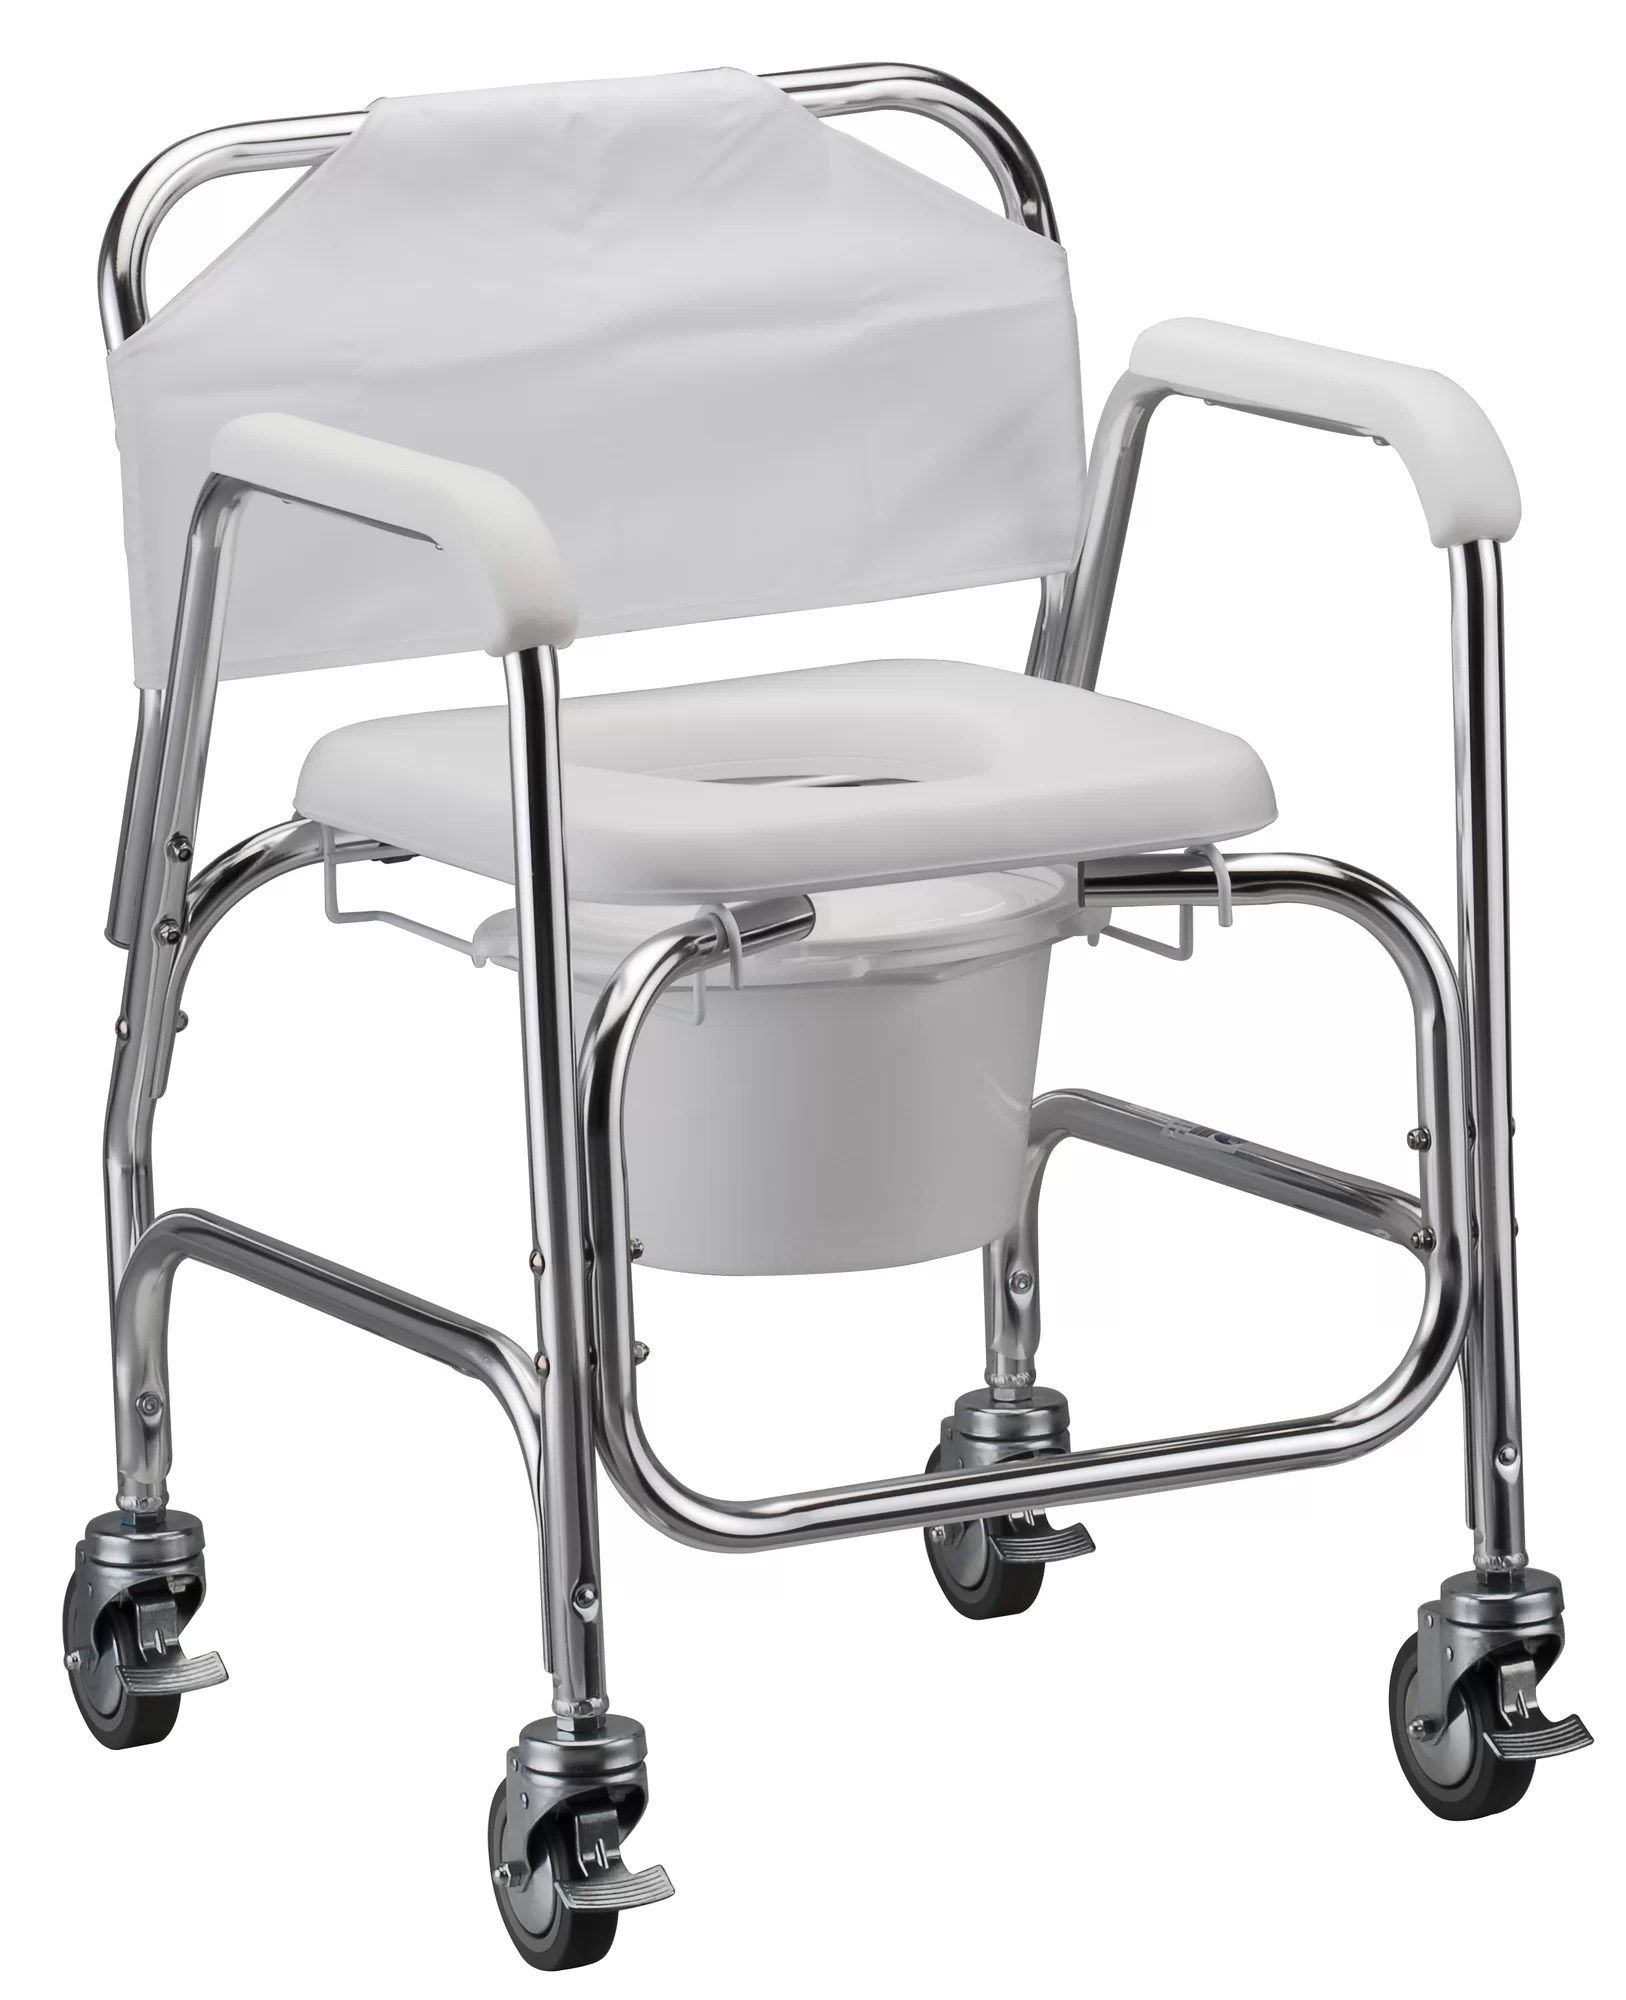 Shower Chair With Wheels Nova Medical Bathroom Deluxe Shower Chair And Commode With